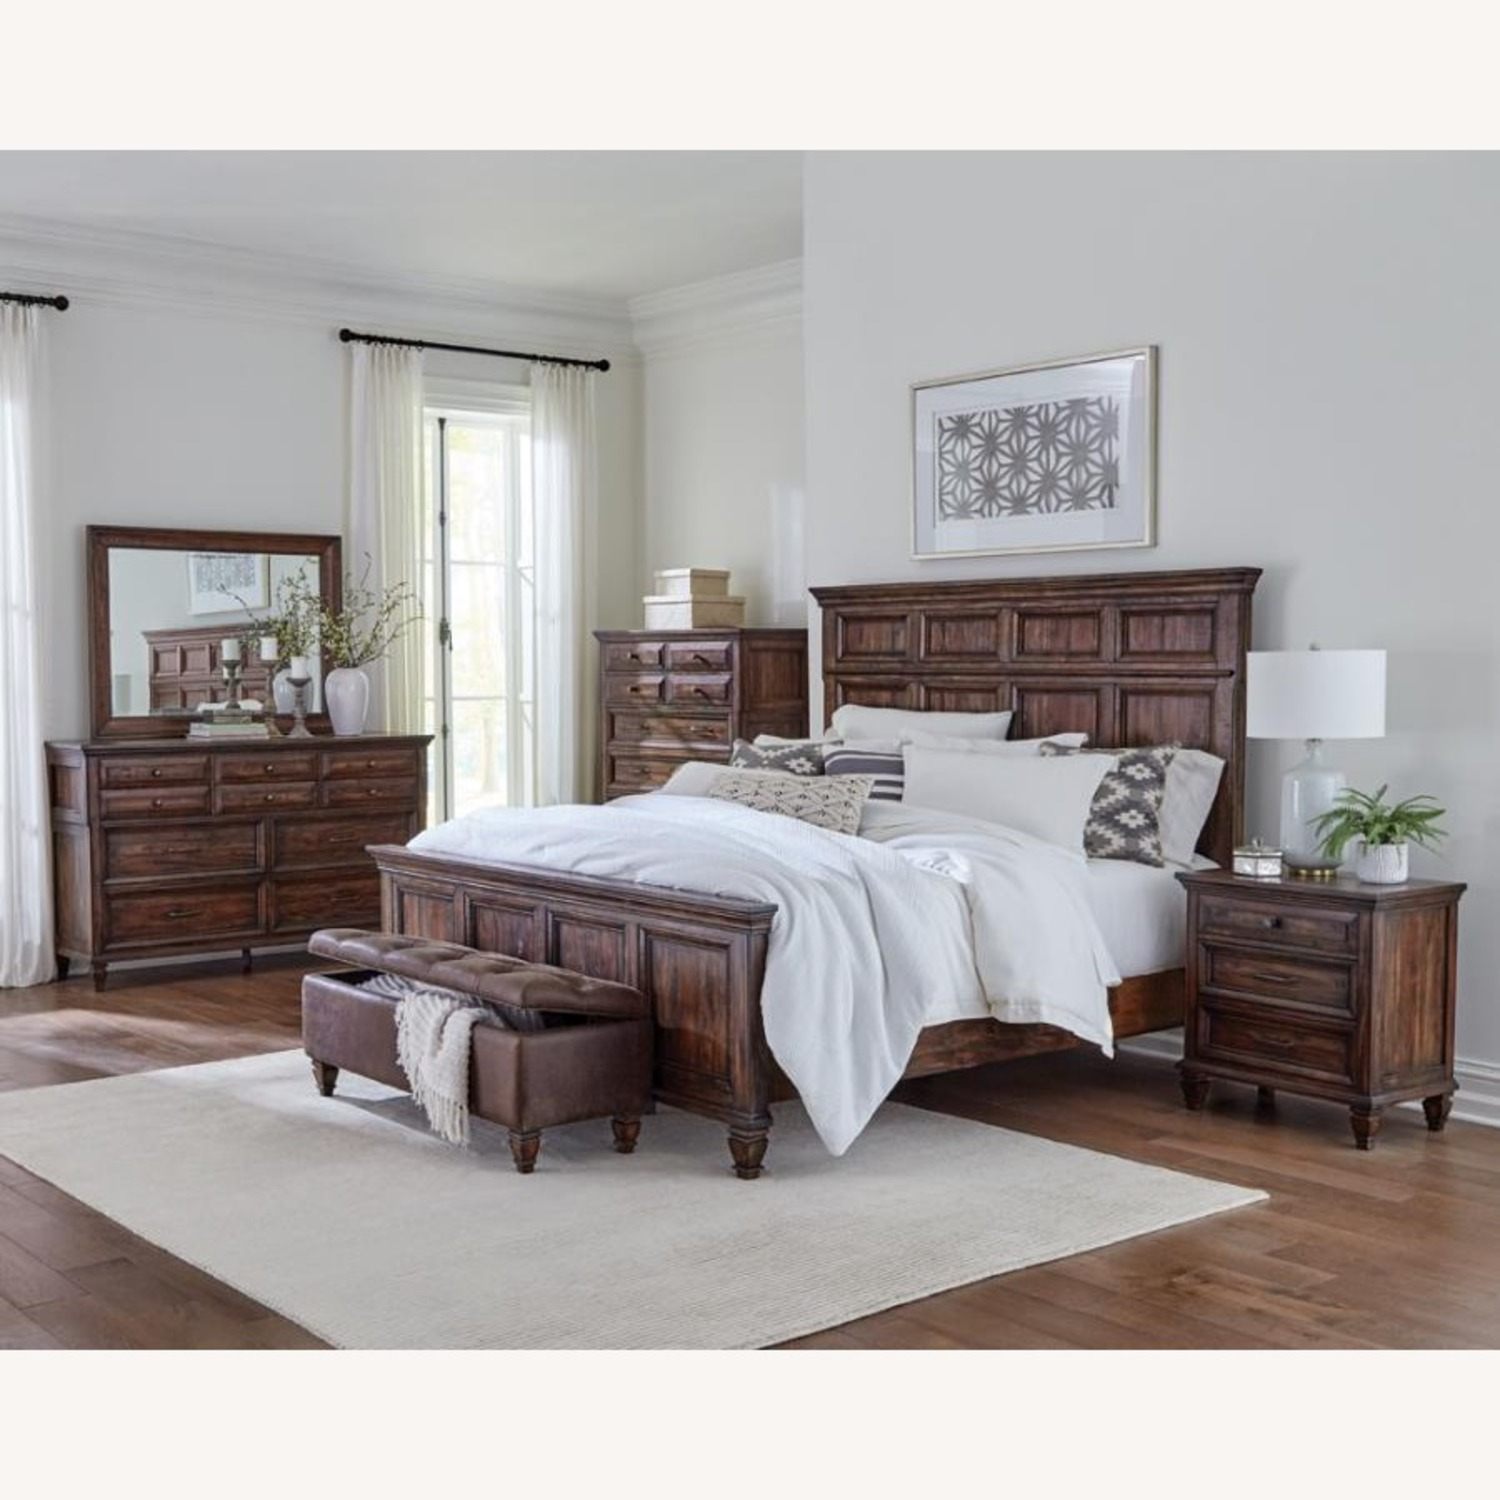 Chest W/ 8 Drawers In Weathered Burnished Brown - image-2